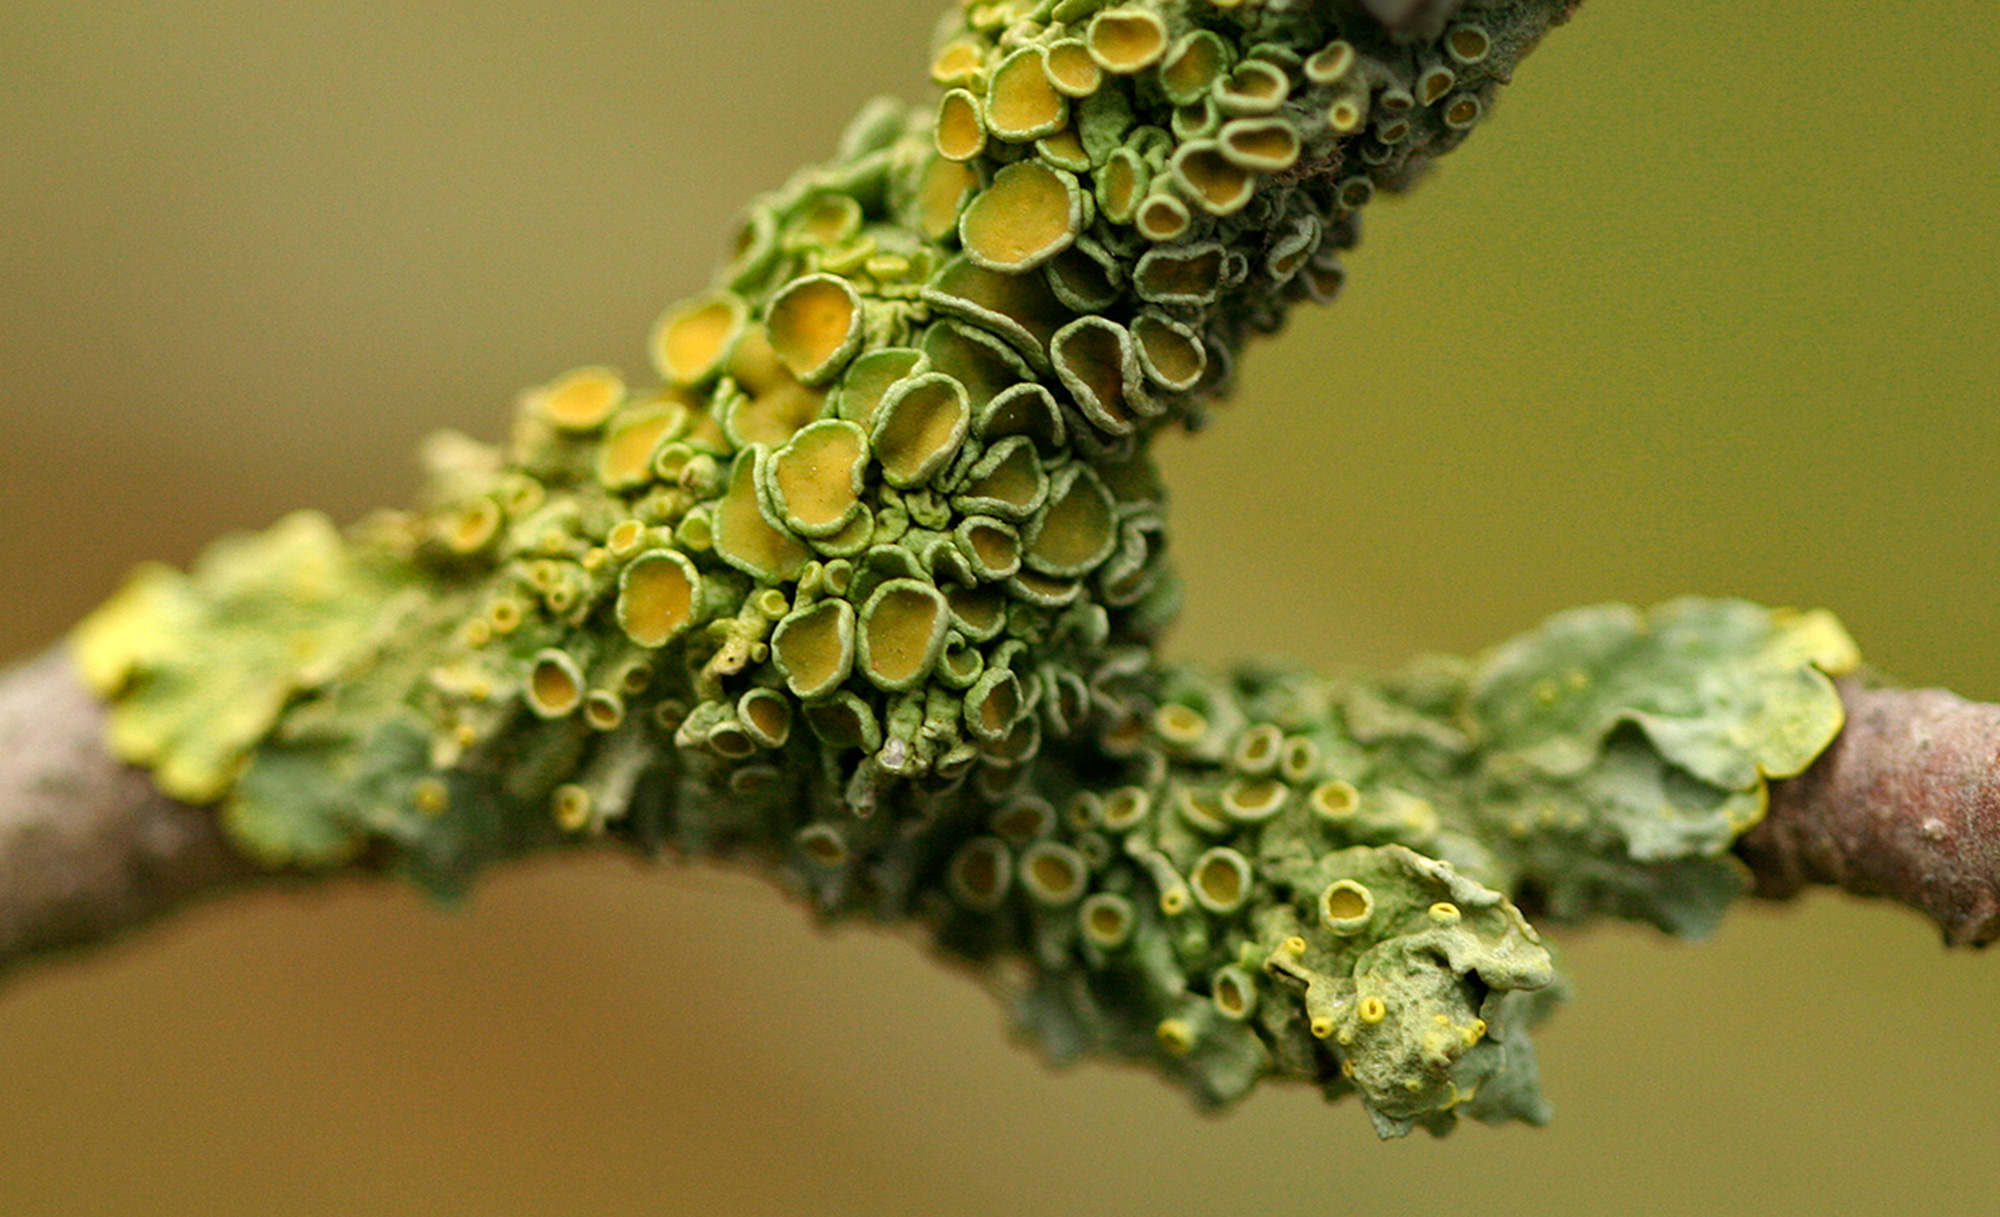 Lichens growing on a branch.